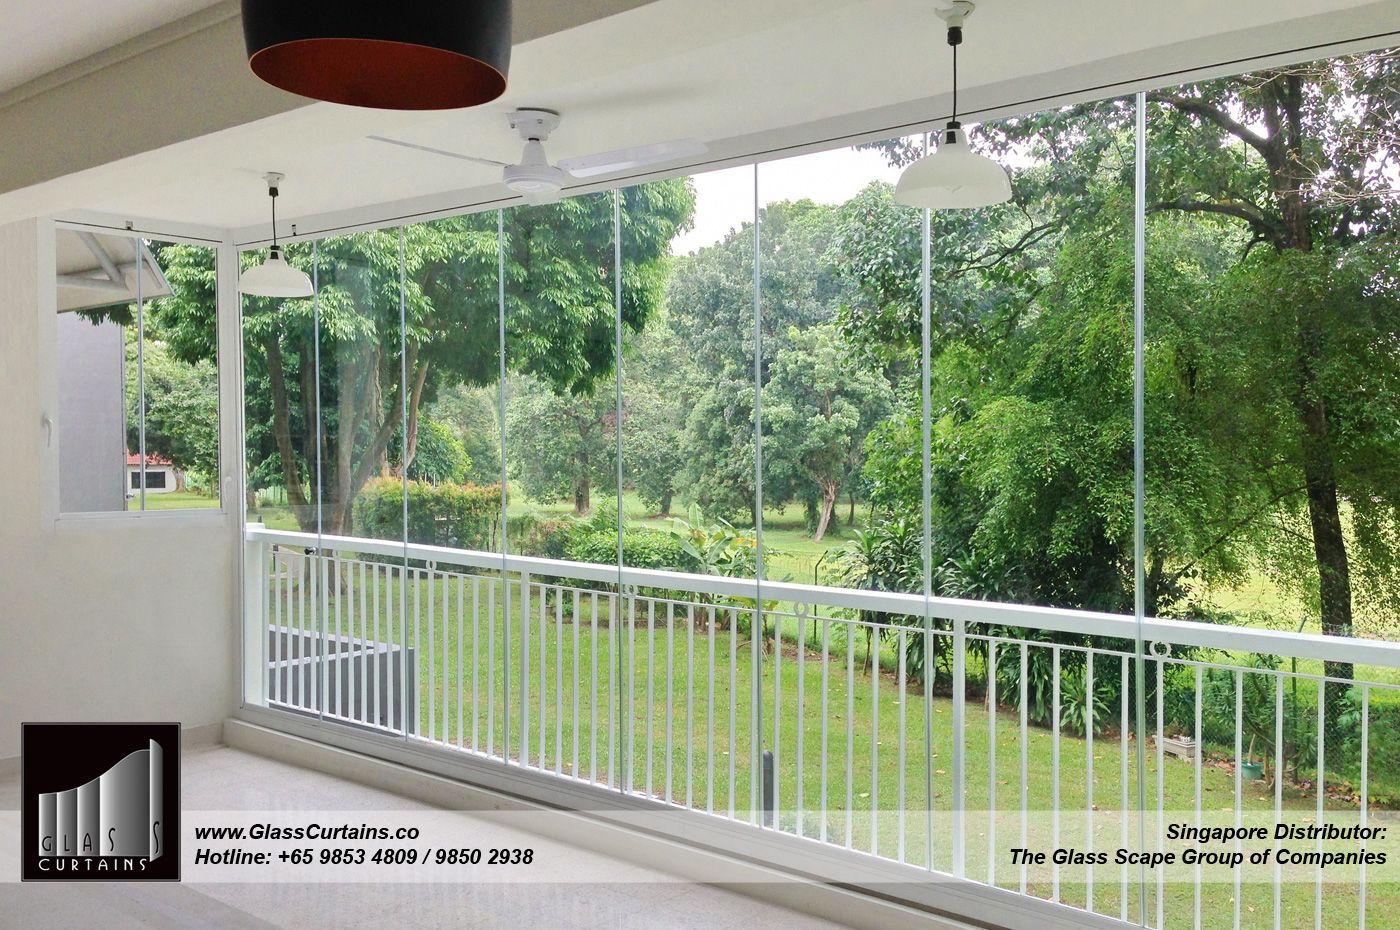 Curtain For Balcony: Glass Curtains®